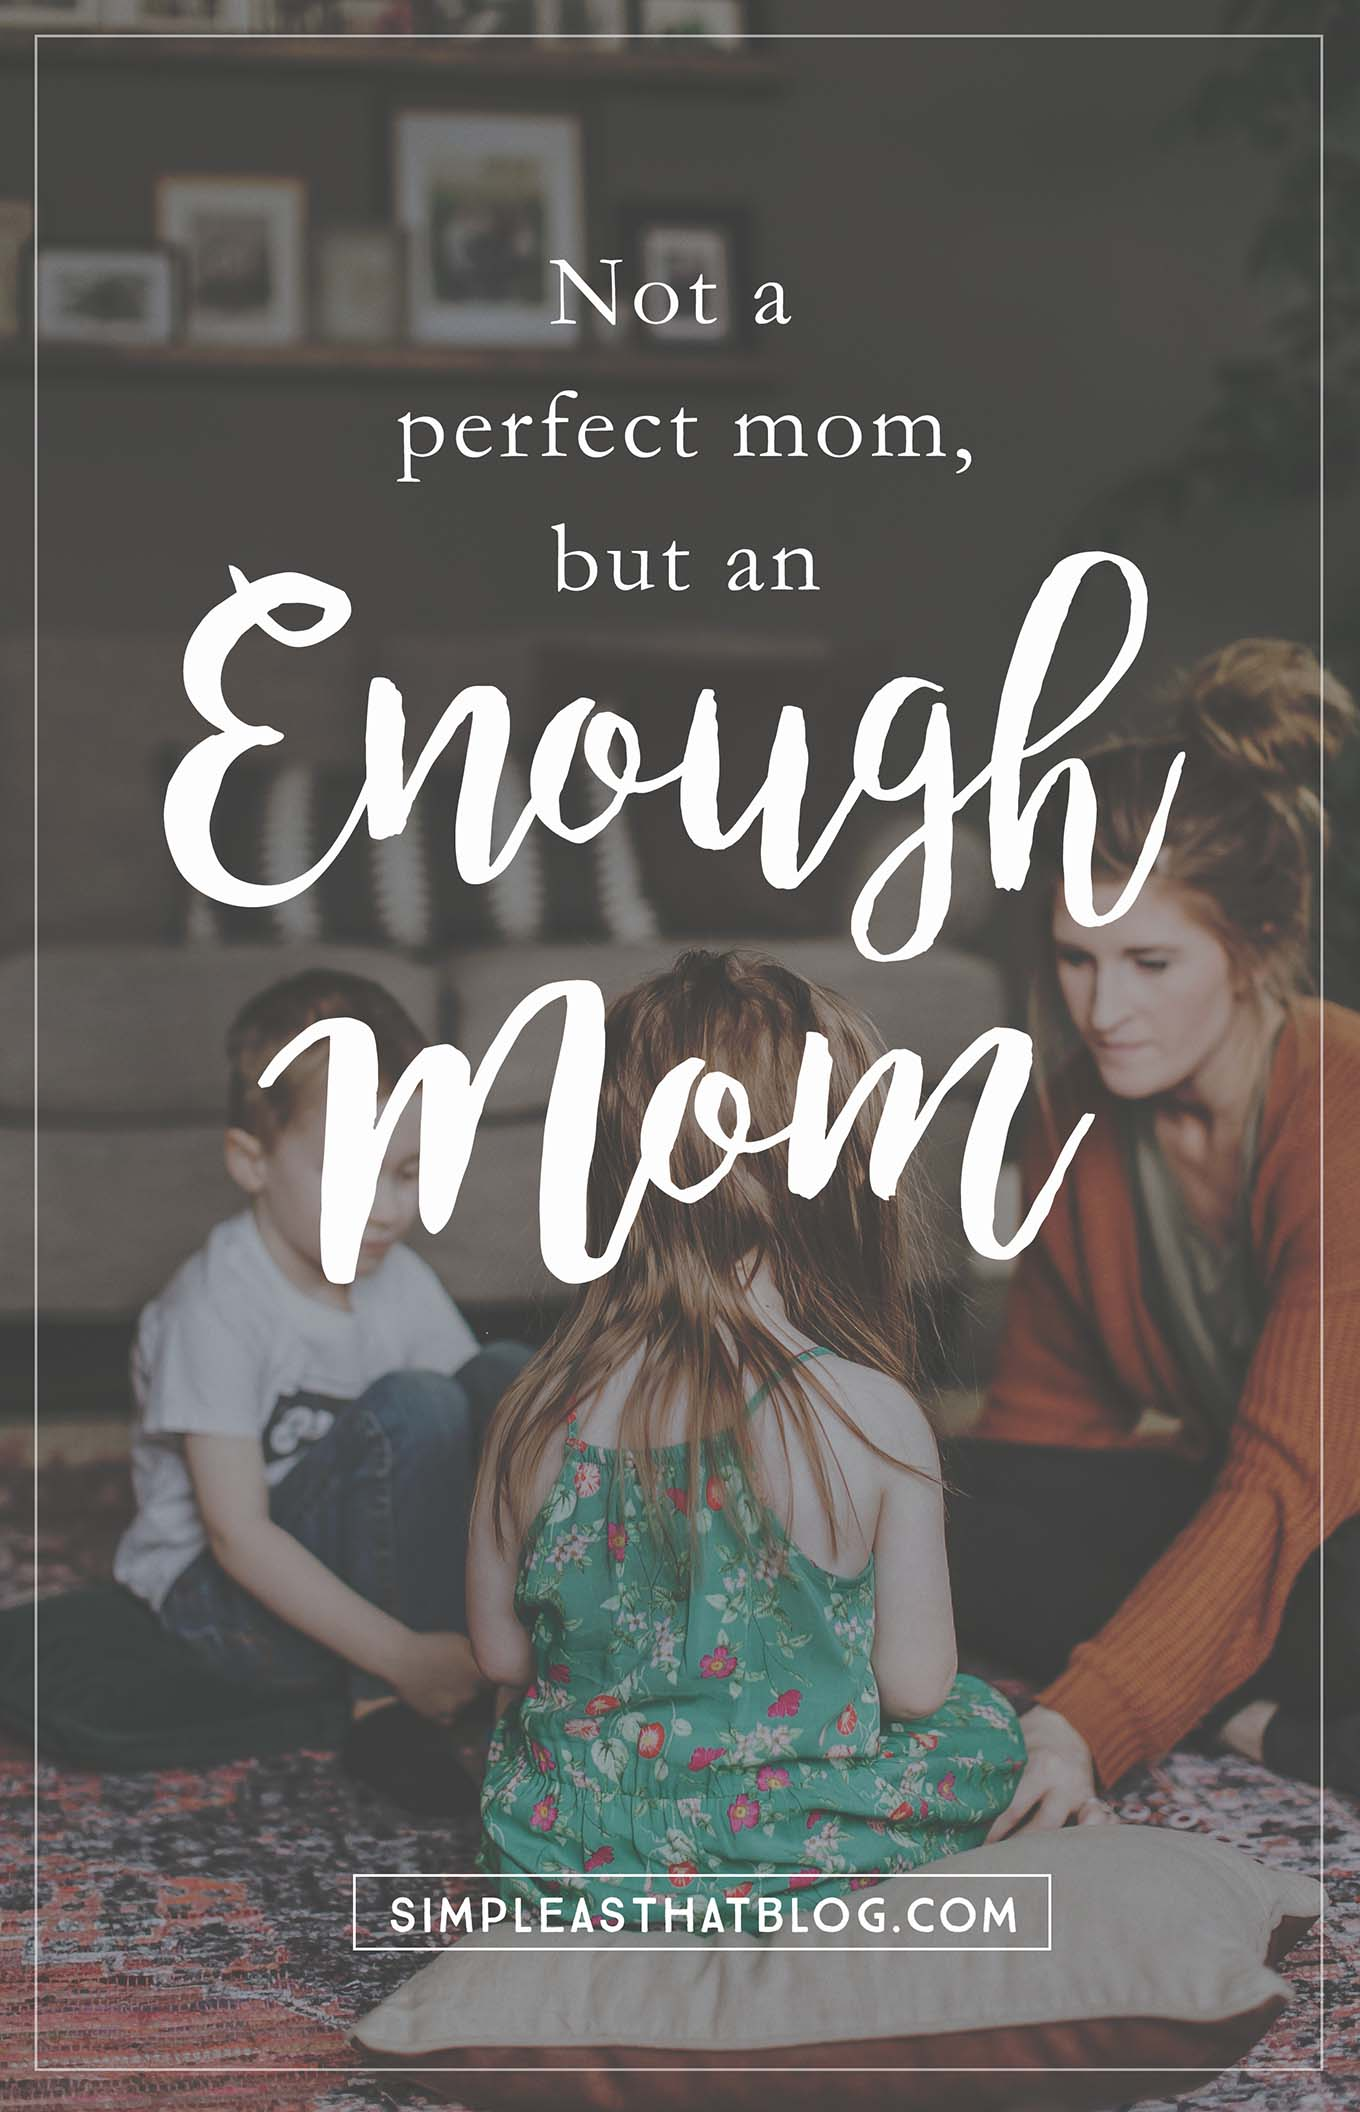 I am not a perfect mom, but I am an enough mom…and so are you! We love these kids through it all and that's what makes everything else we do enough.